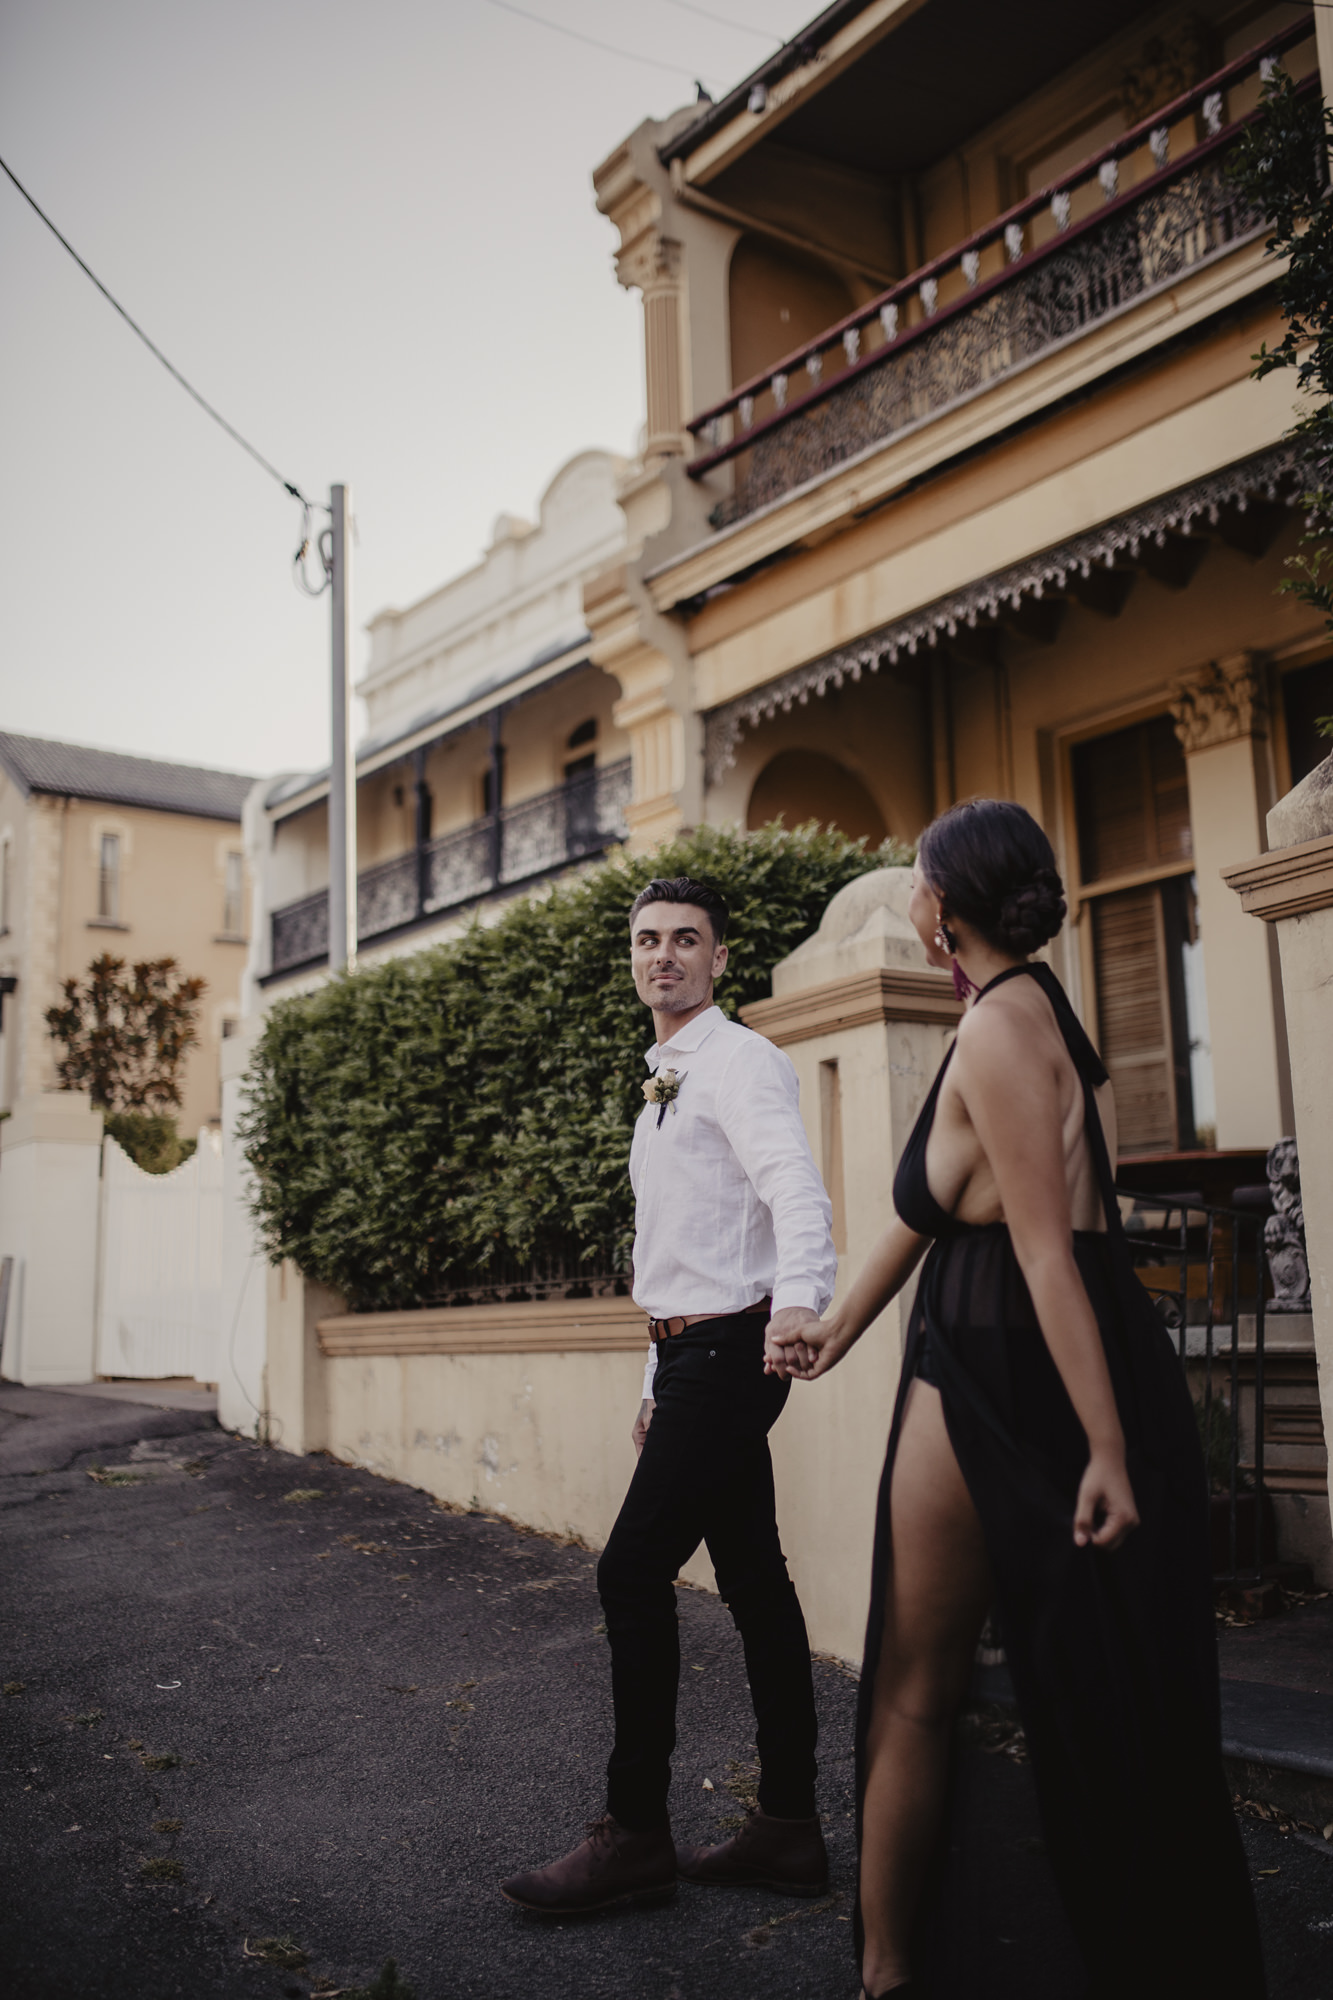 Jacob and Chanelle-8.JPG